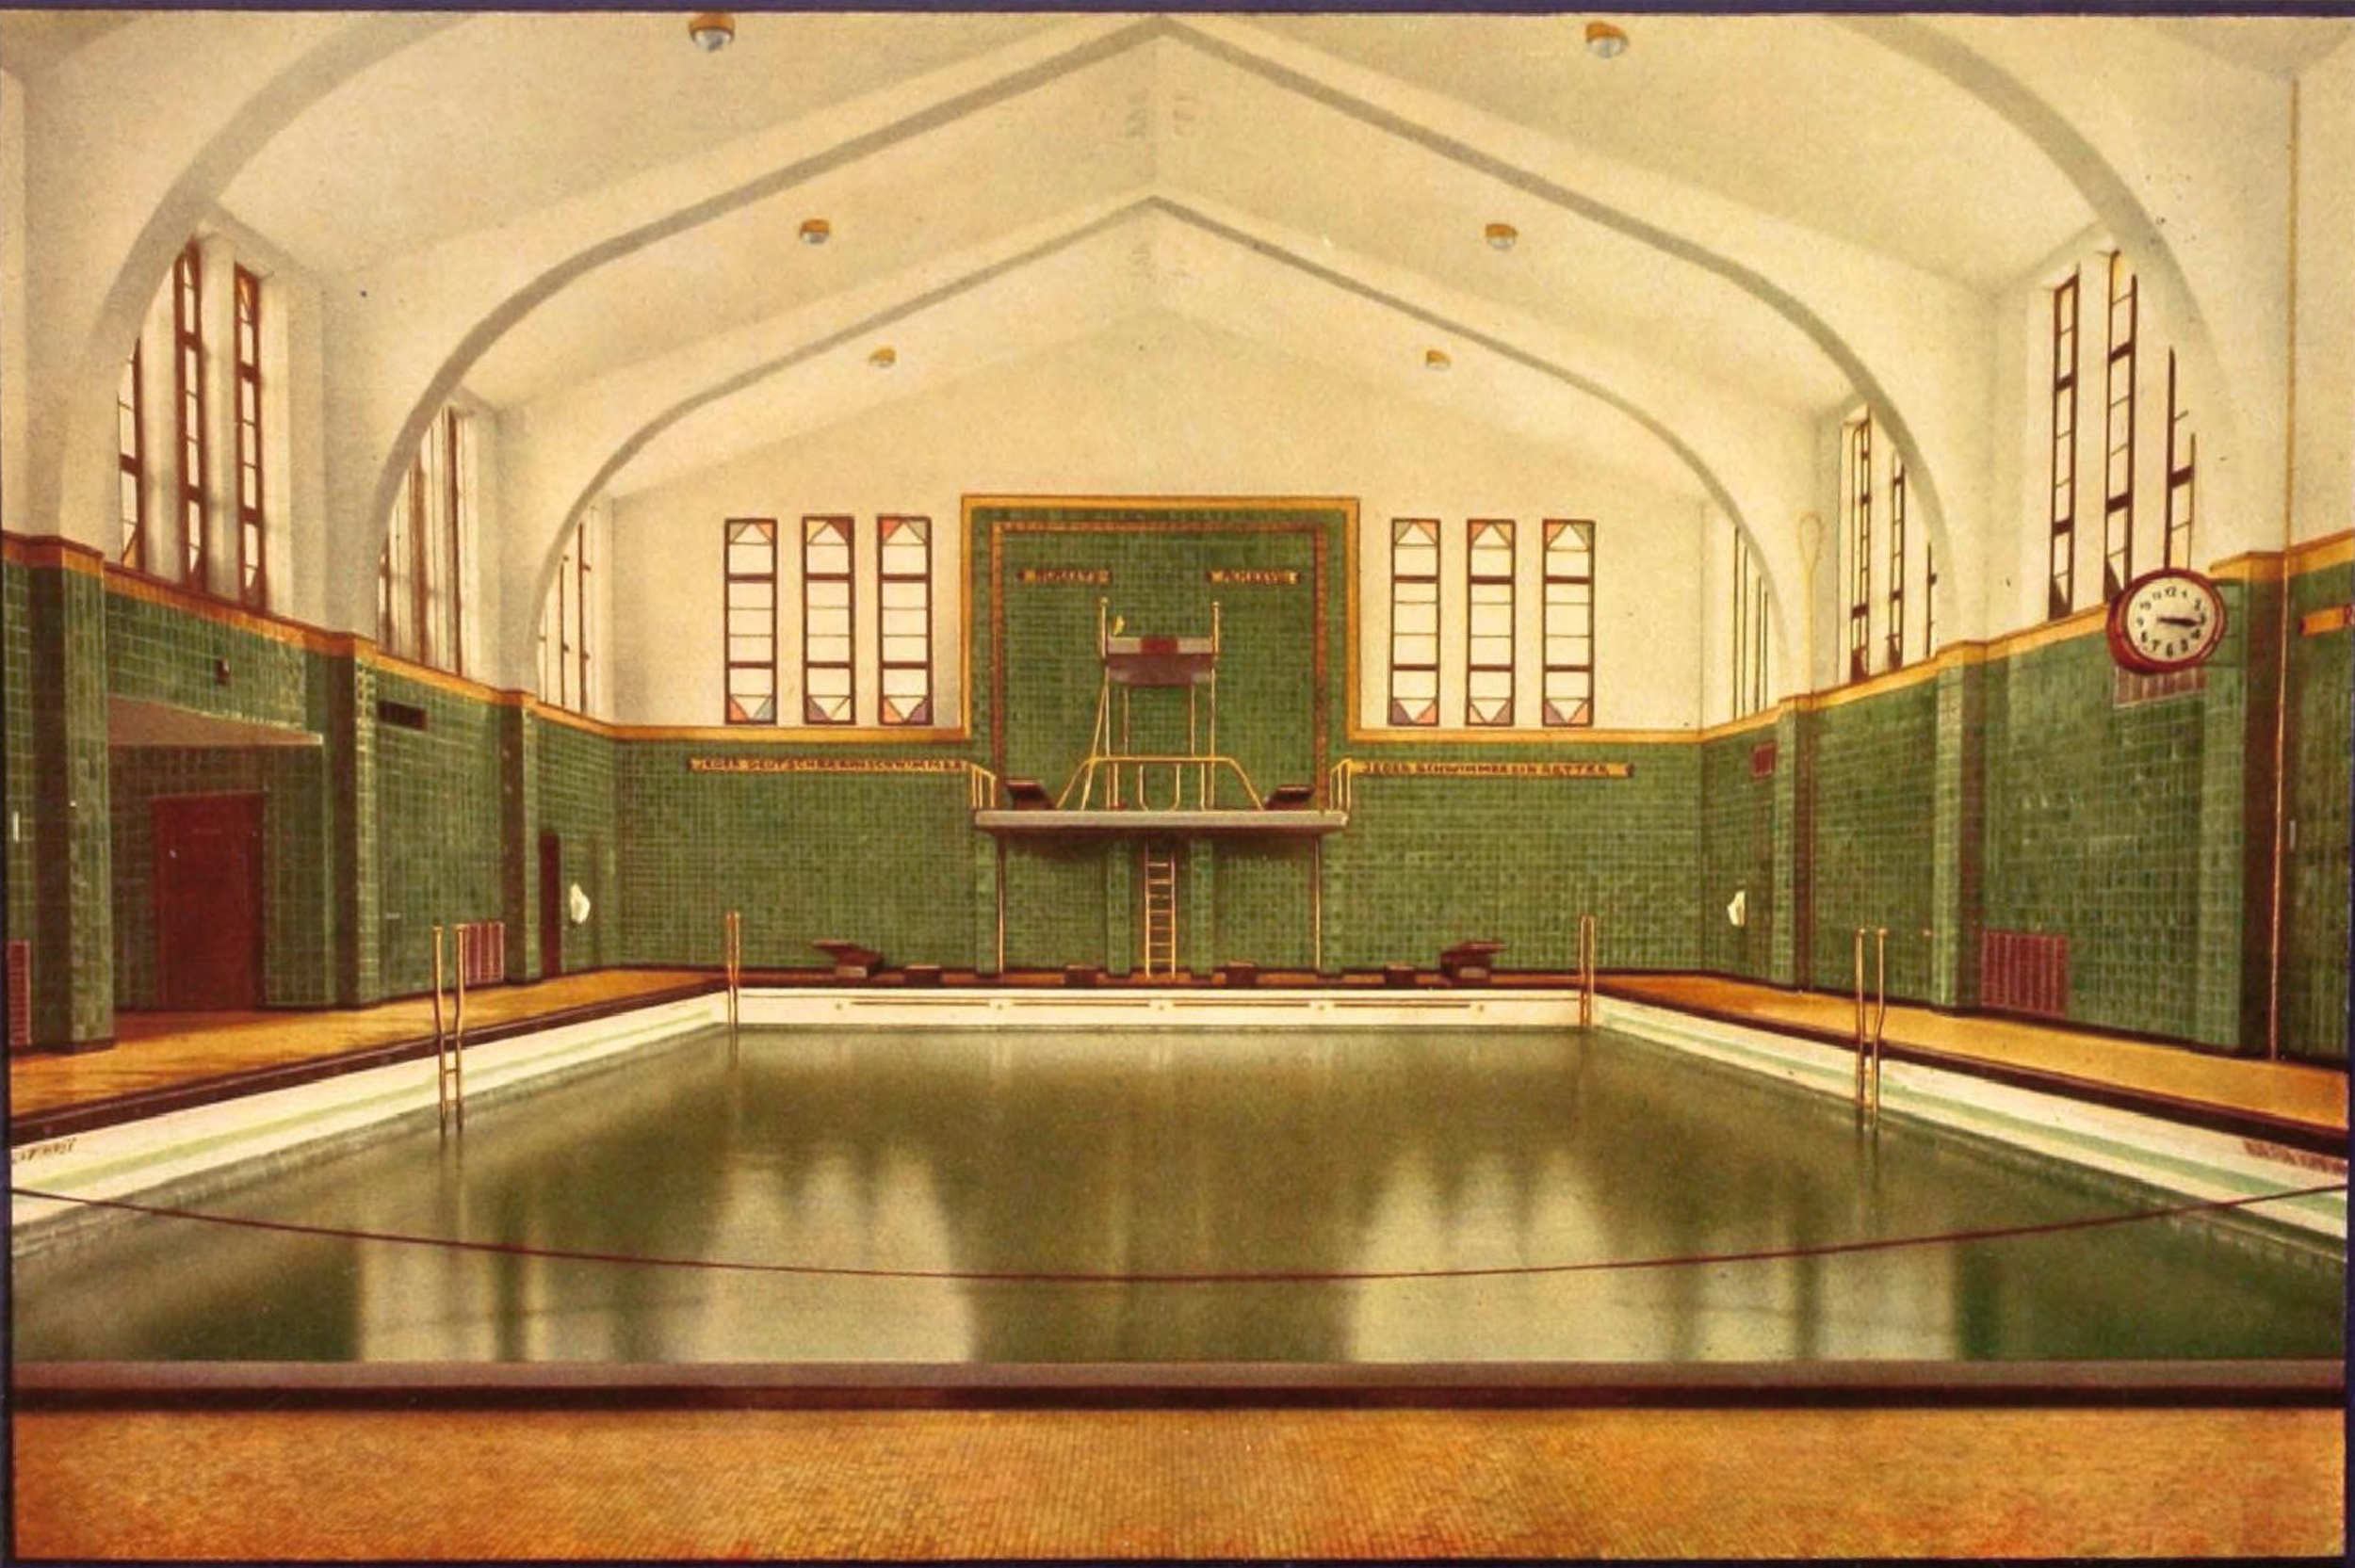 villeroy boch bathhouse swimming pool design hansabad bremen circa 1929. Black Bedroom Furniture Sets. Home Design Ideas